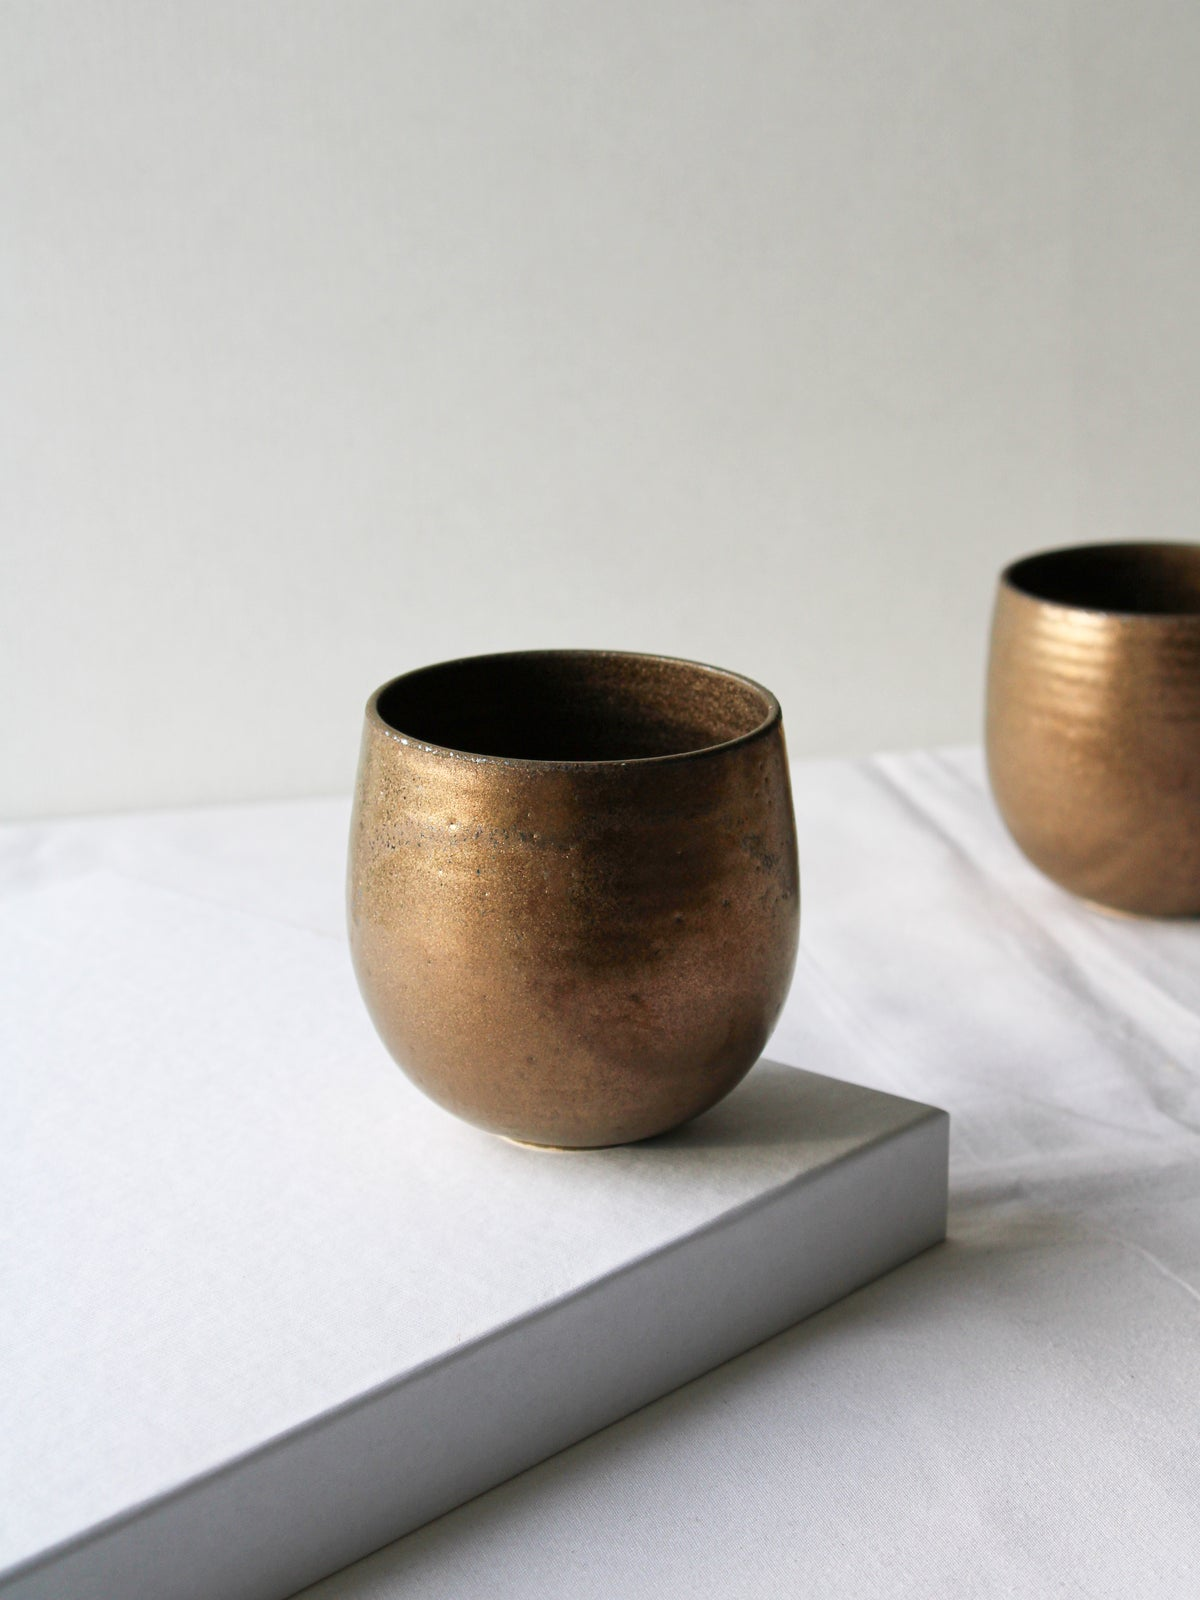 Image of cup in gold